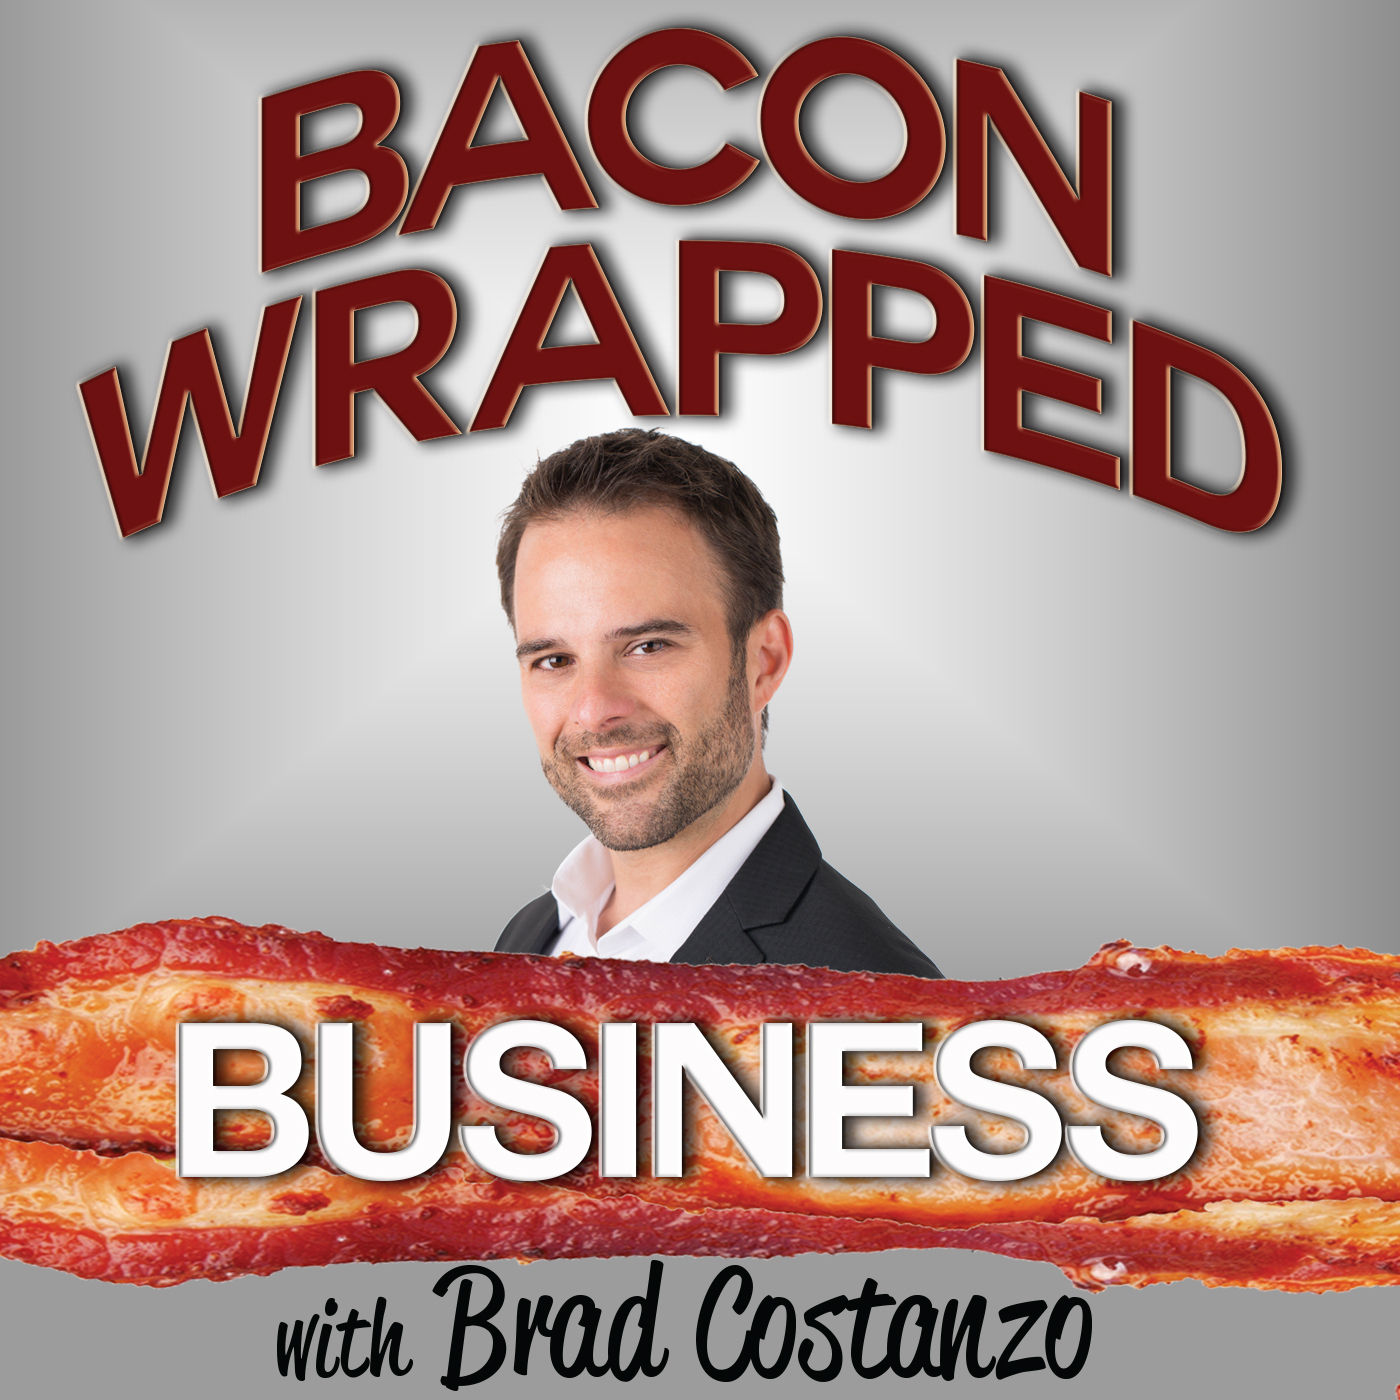 Bacon Wrapped Business with Brad Costanzo